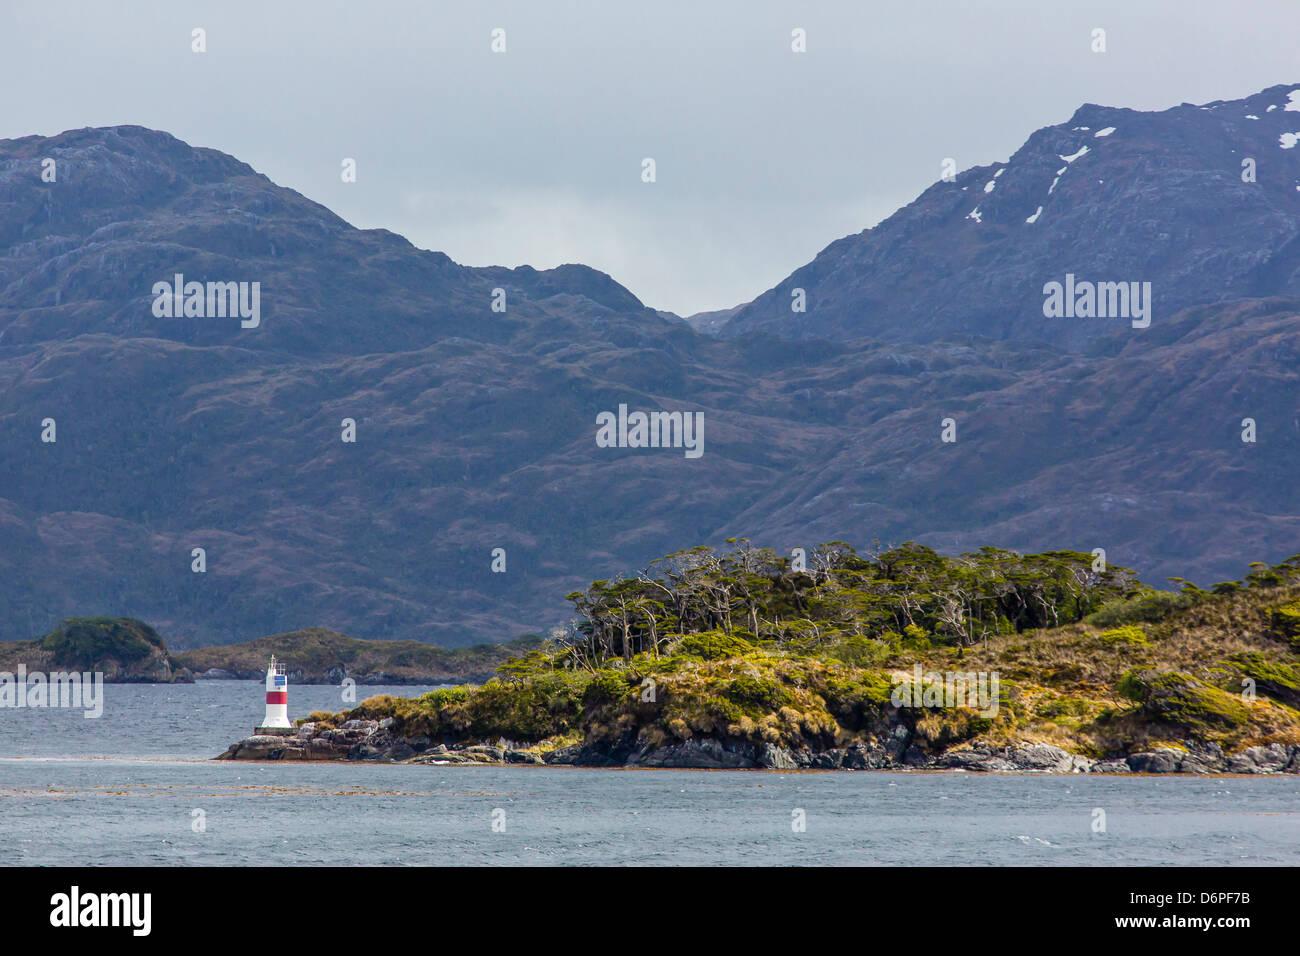 Navigation aid in the Strait of Magellan, Patagonia, Chile, South America - Stock Image